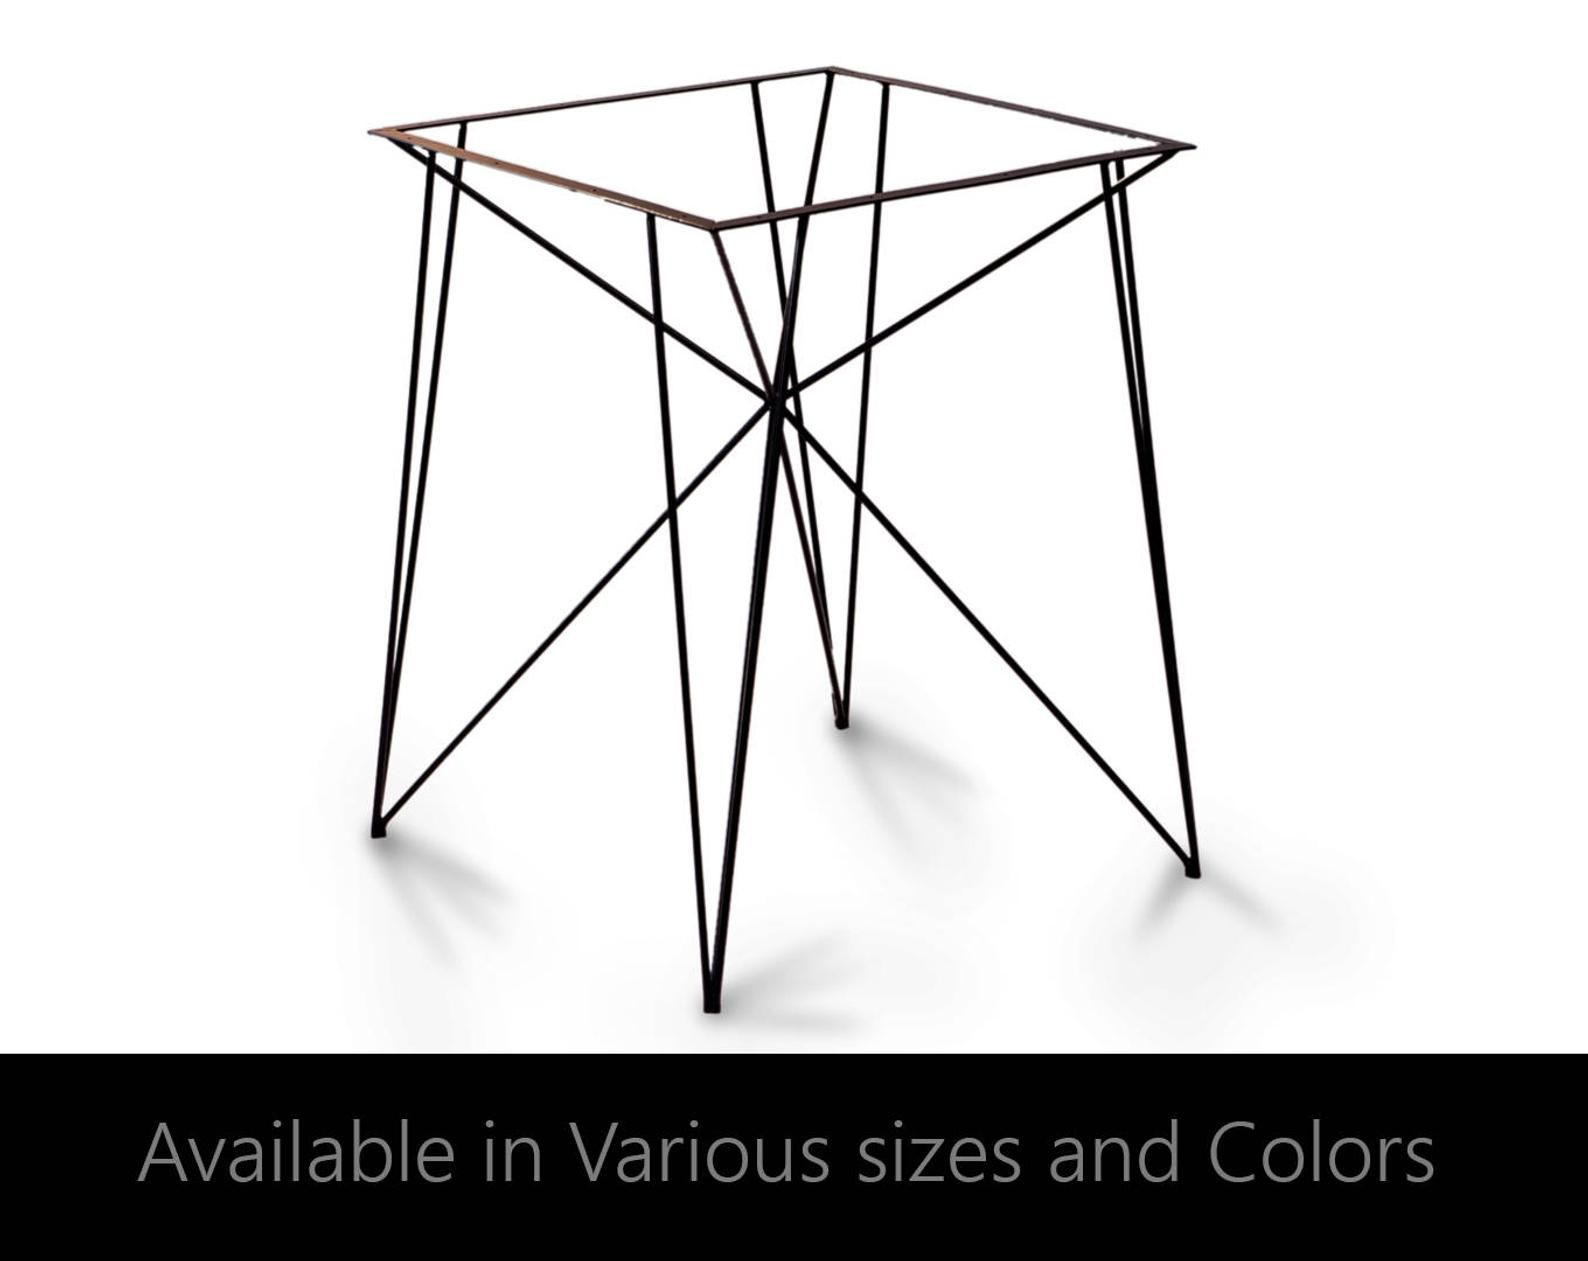 Photo of Round dining table legs, Round table legs, Square table legs…